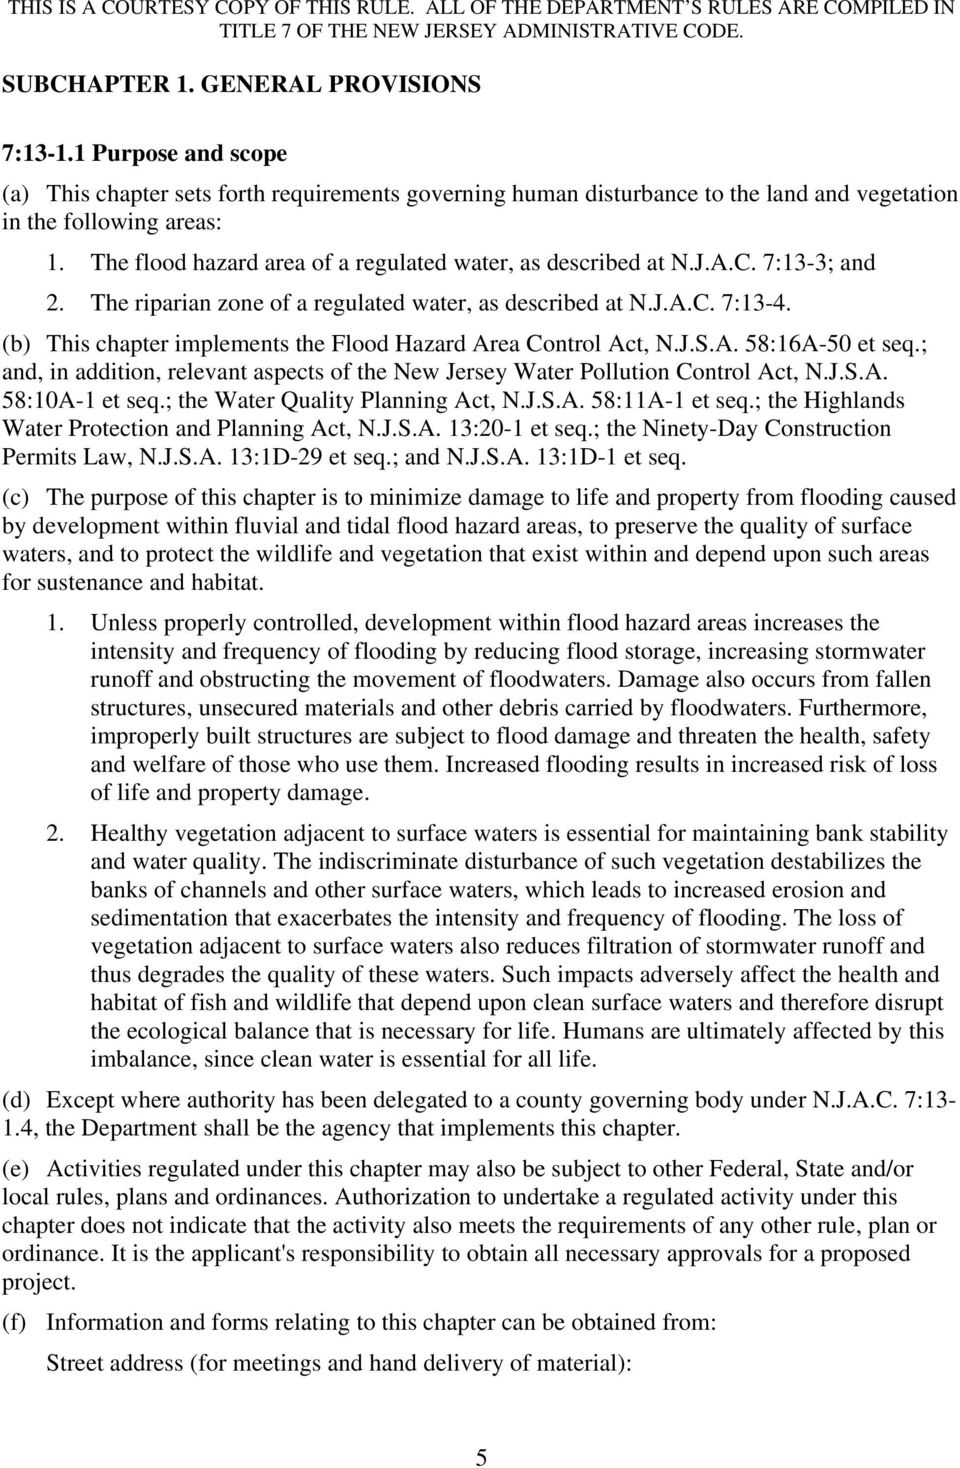 (b) This chapter implements the Flood Hazard Area Control Act, N.J.S.A. 58:16A-50 et seq.; and, in addition, relevant aspects of the New Jersey Water Pollution Control Act, N.J.S.A. 58:10A-1 et seq.